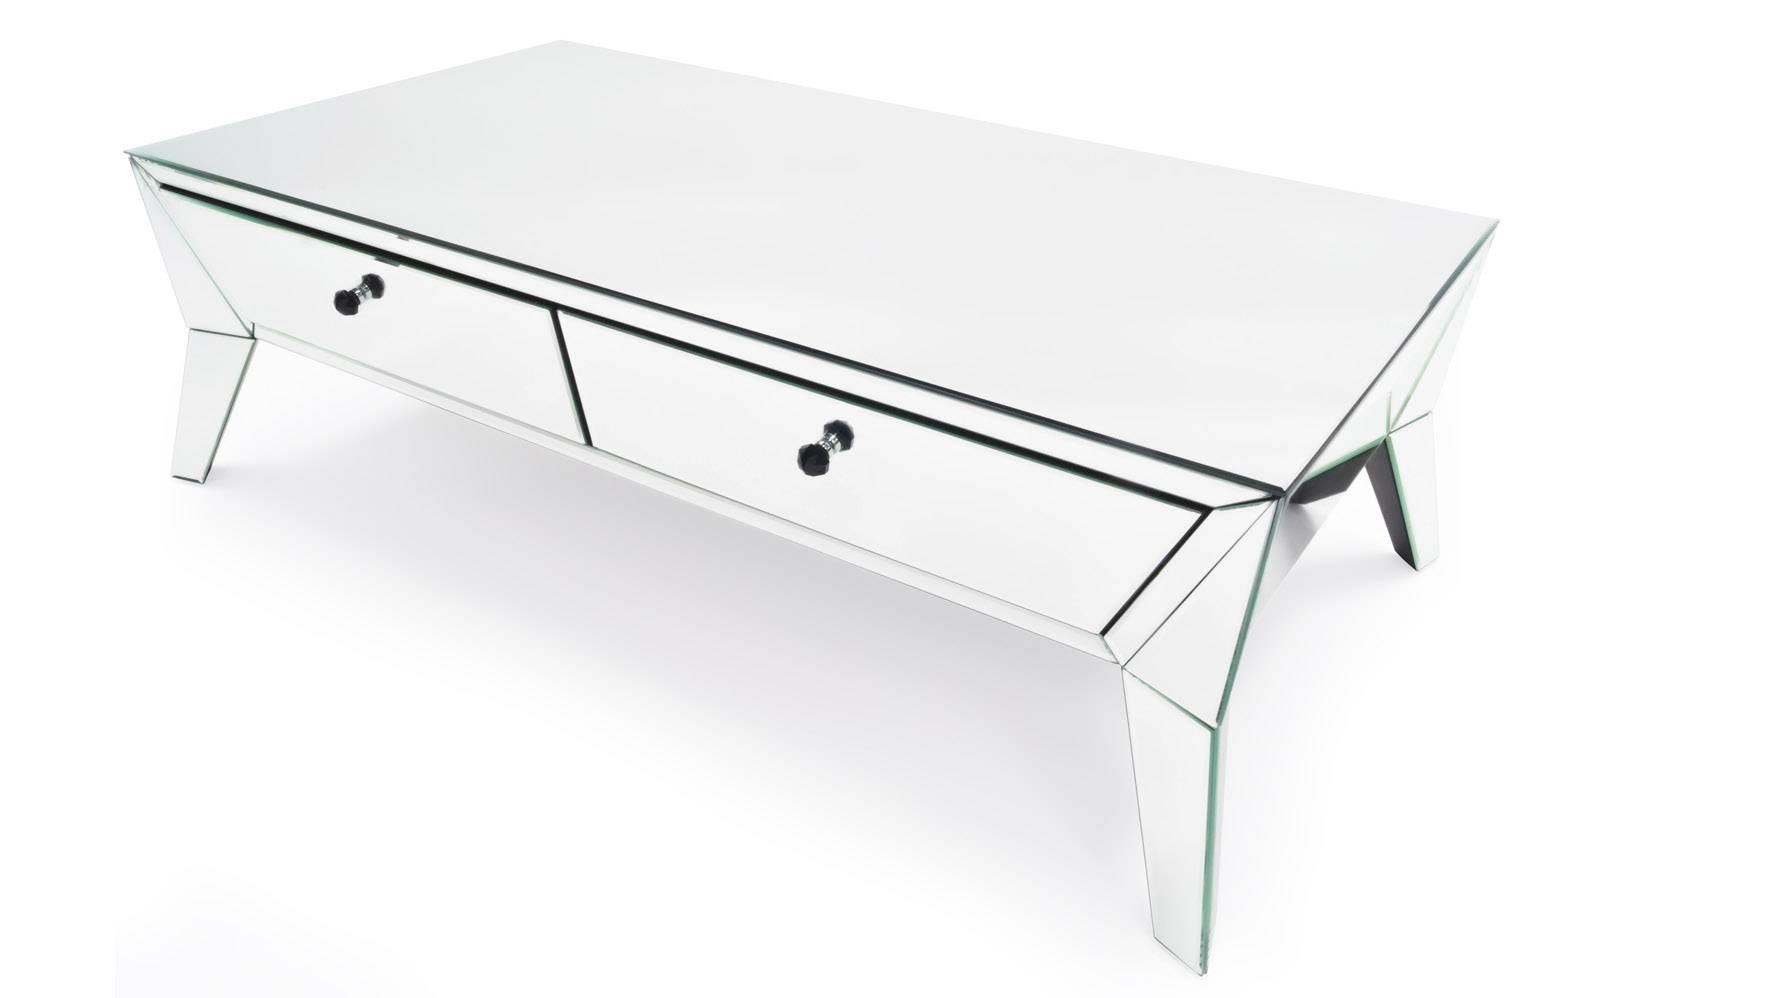 Lave Mirrored Glass Coffee Table | Zuri Furniture With Regard To Mirrored Coffee Tables (View 17 of 30)